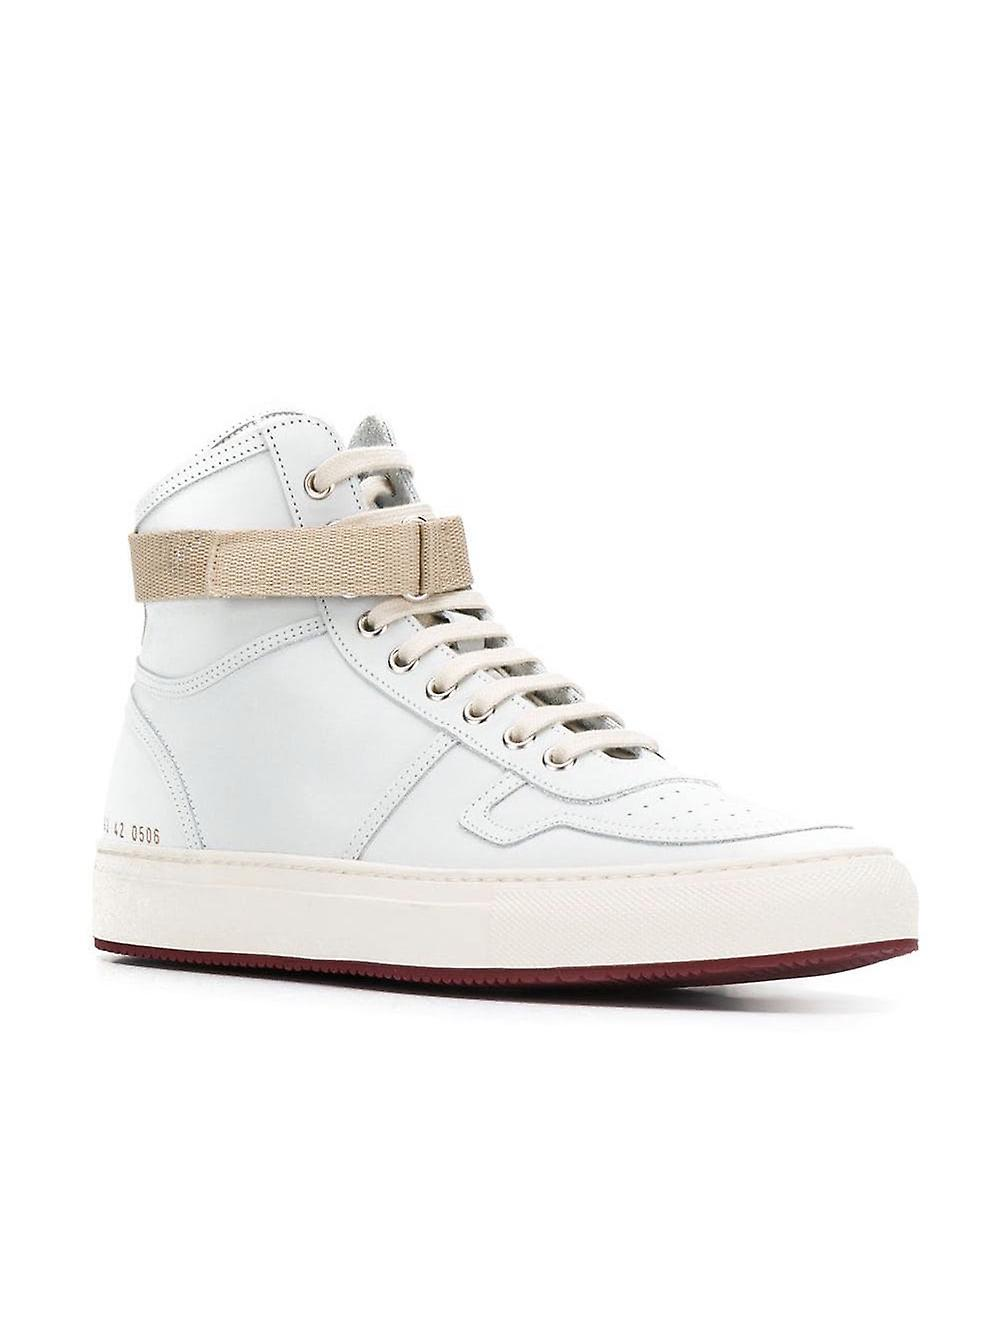 Common Projects Ezcr016001 Men's White Leather Hi Top Sneakers